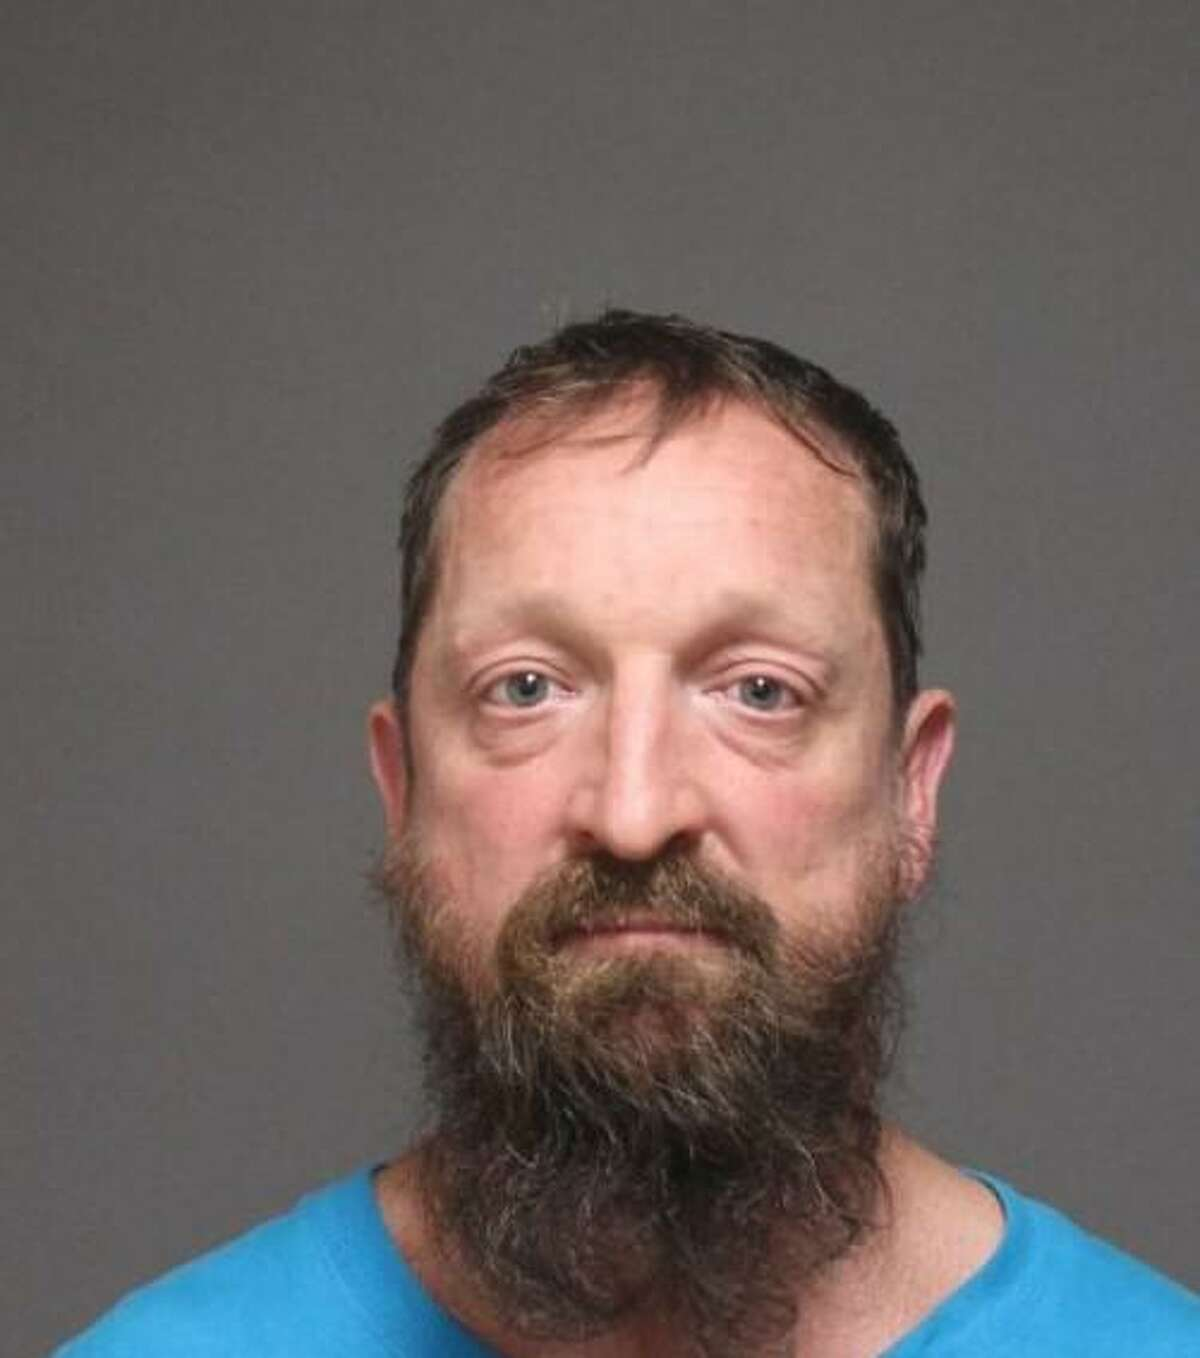 Jason Scoran, a 45-year-old Fairfield man, was arrested and charged with third-degree assault, third-degree strangulation and disorderly conduct, according to police.